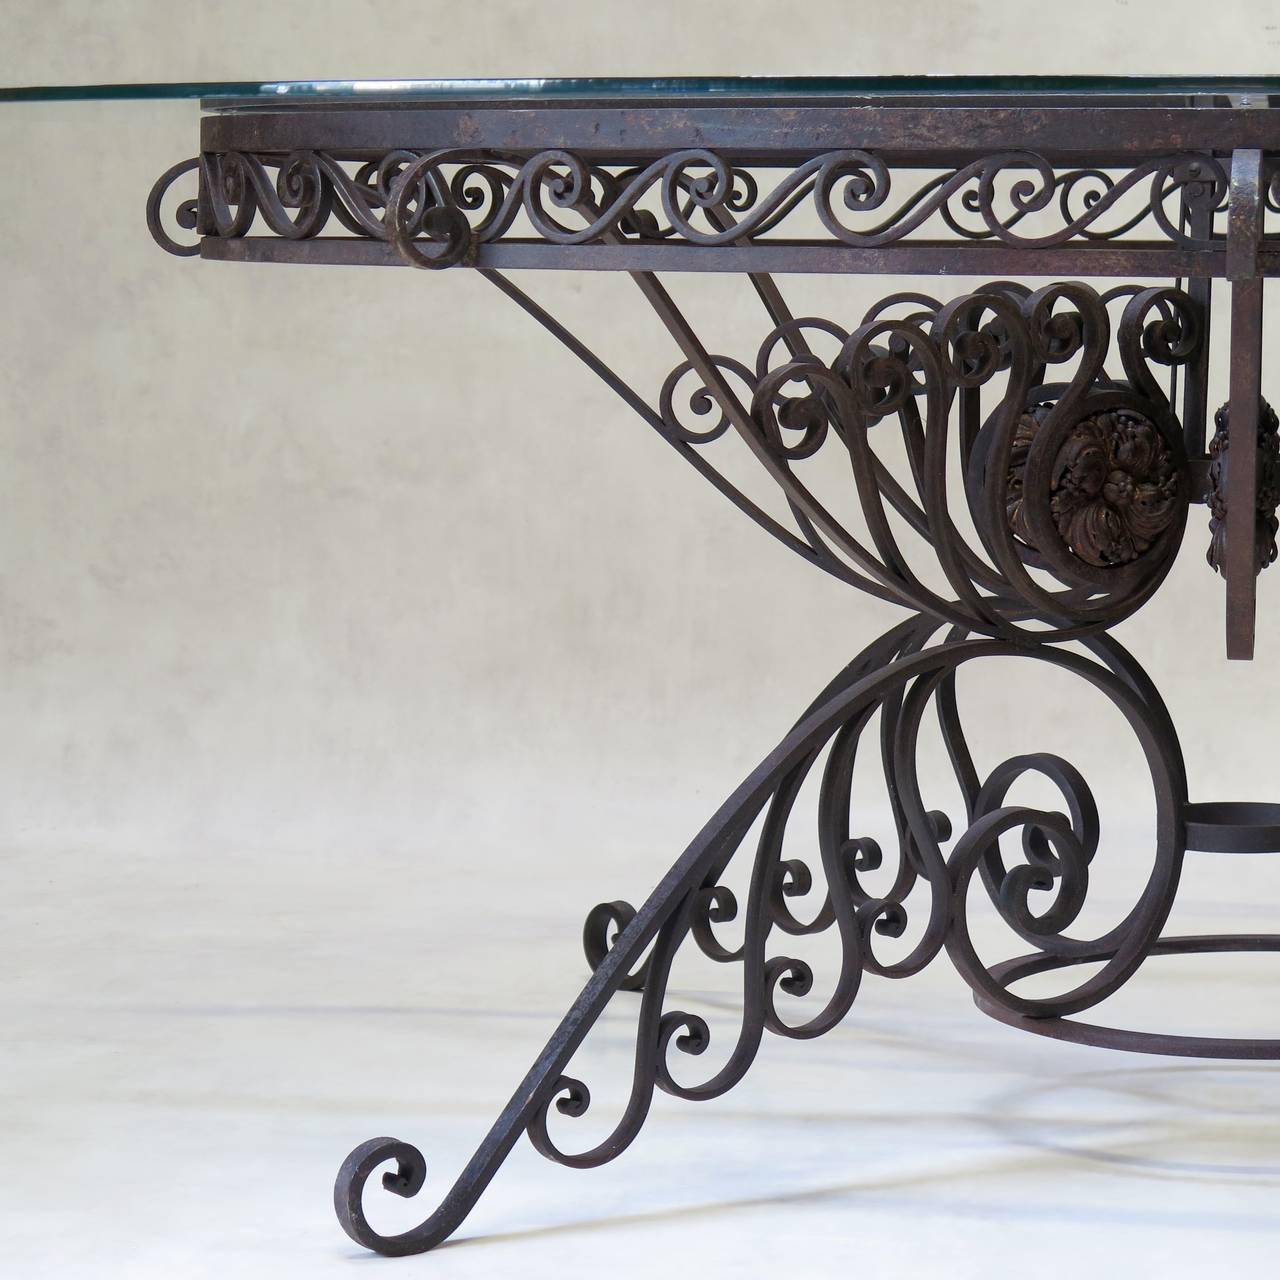 Spectacular Oval Wrought Iron Art Deco Dining Table, France, 1930s For Sale 2